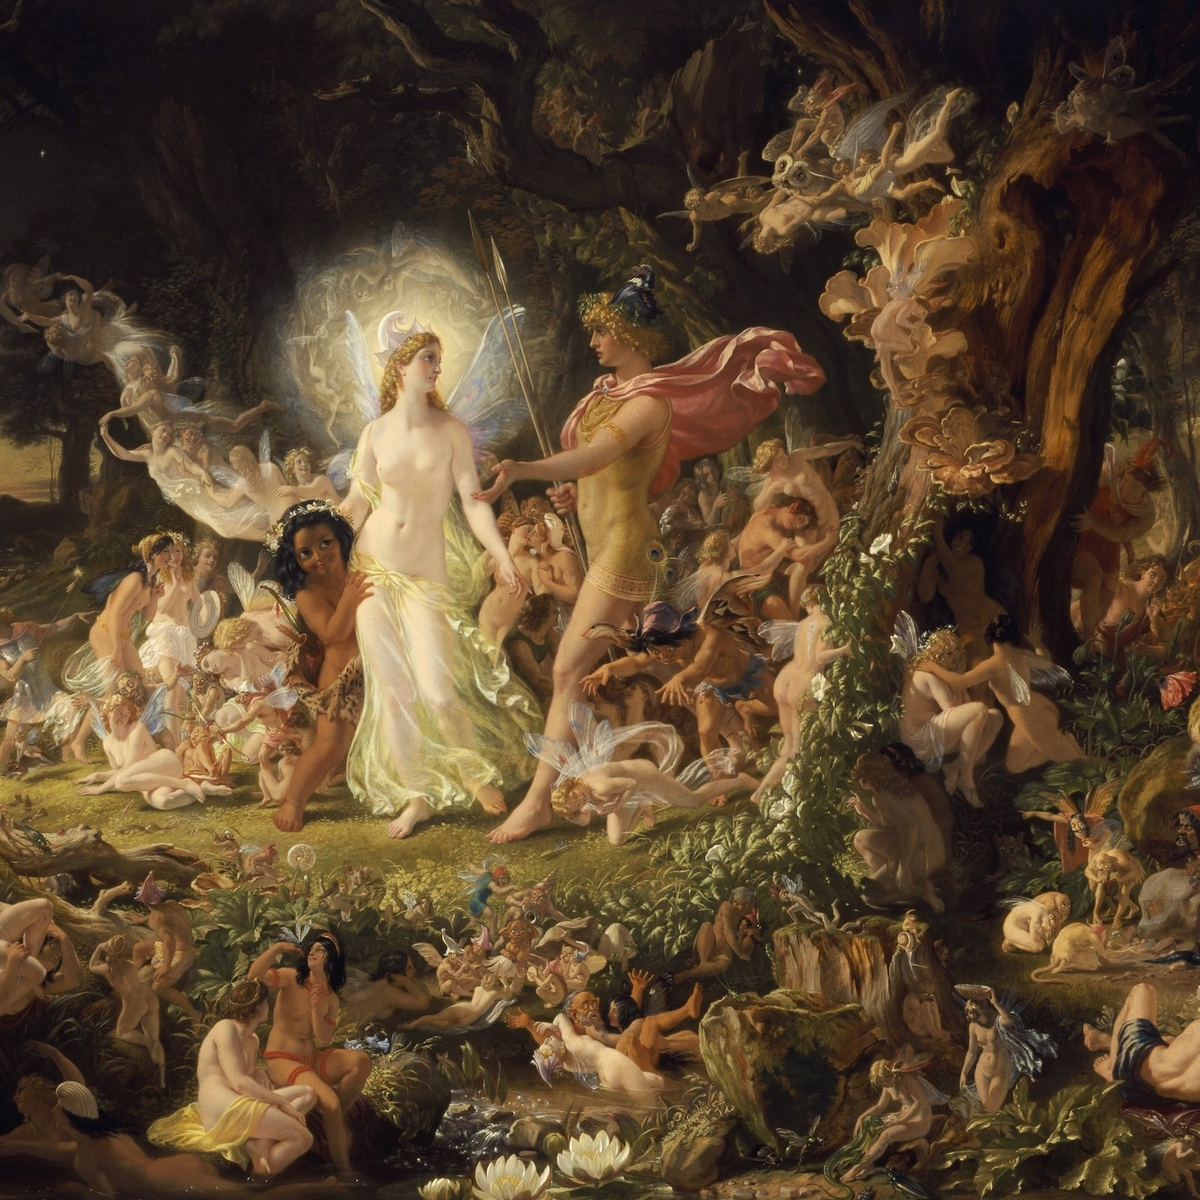 gender roles in a midsummer nights dream essay Sexuality in a midsummer night patriarchy and gender roles in king lear and a midsummer a midsummer night's dream by william shakespeare essay.